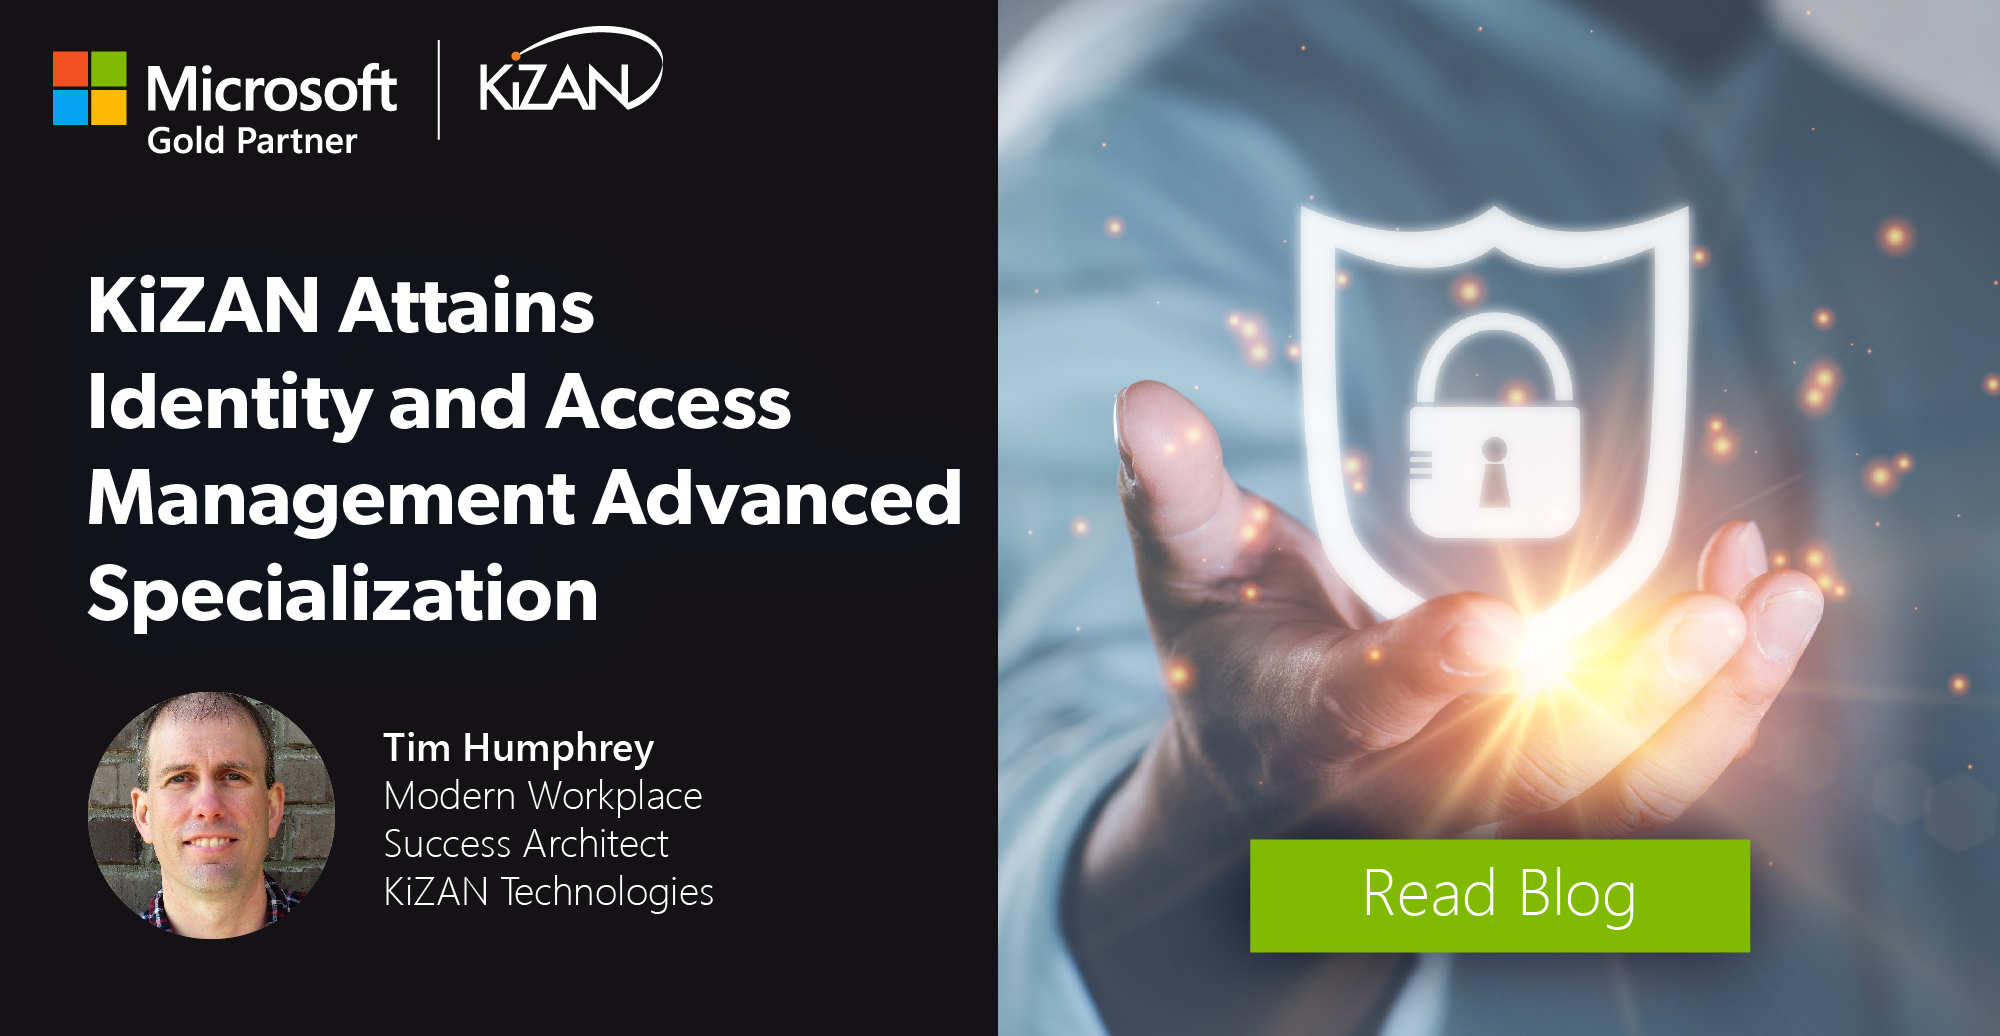 KiZAN Attains Identity and Access Management Advanced Specialization